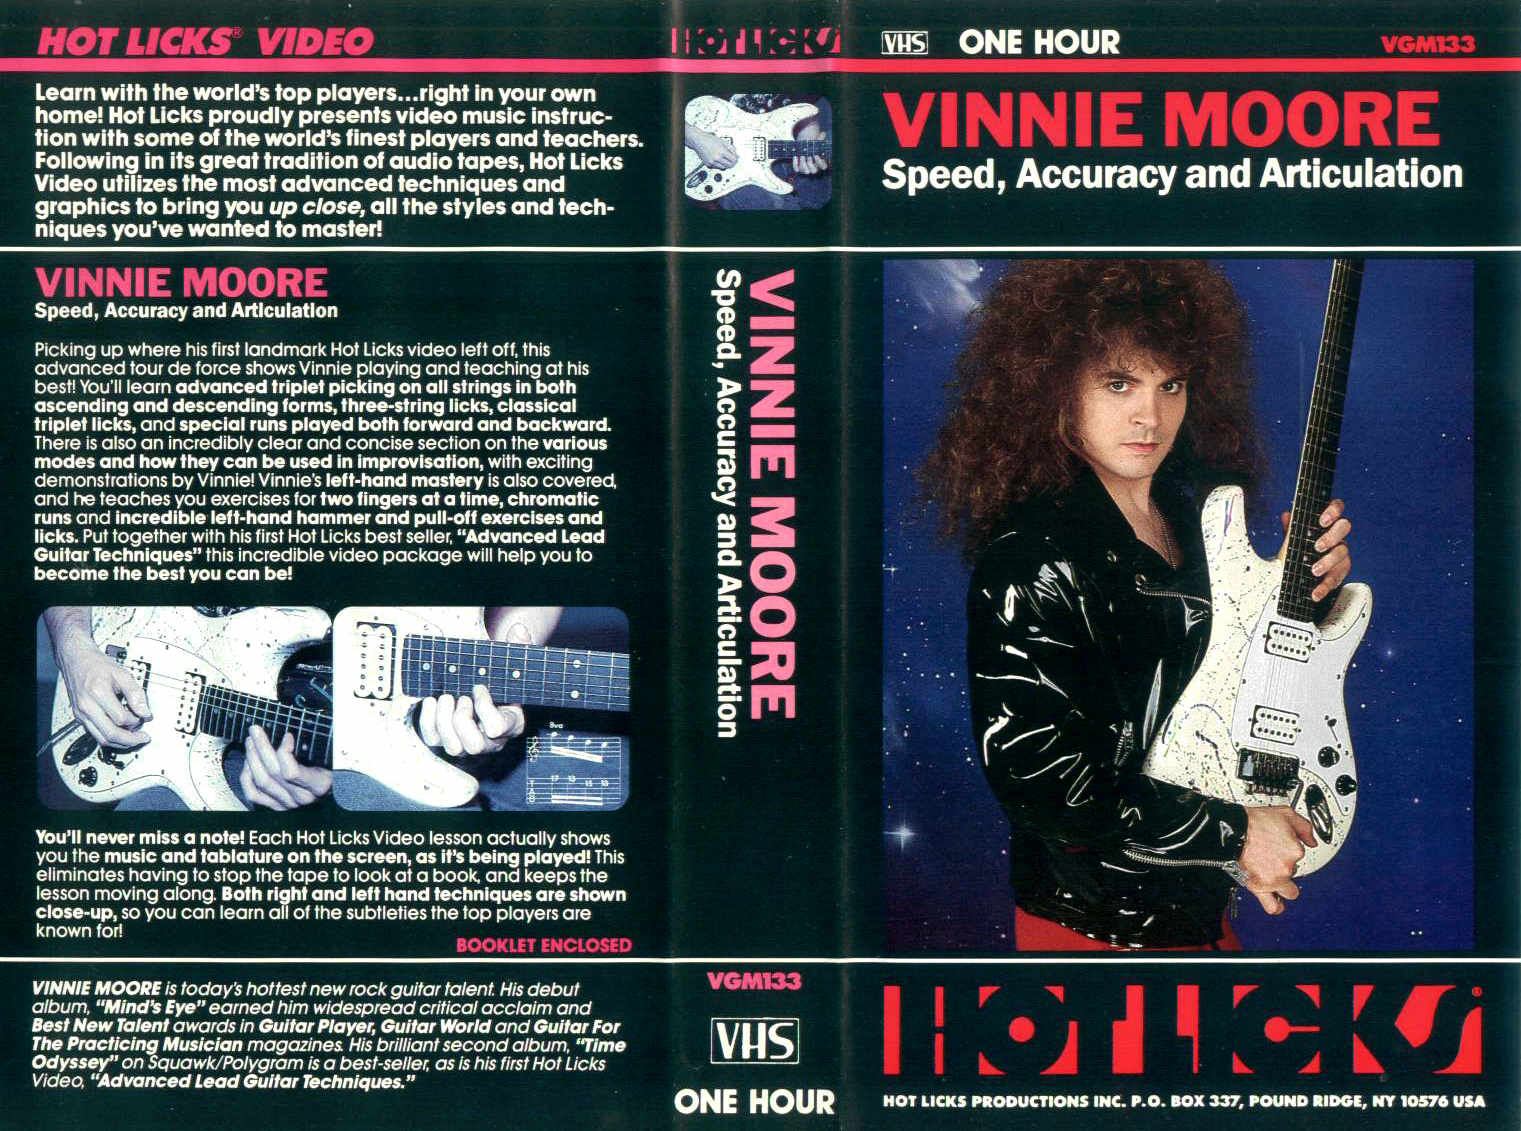 V. Moore - Speed, Accuracy and Articulation / videocassetta VHS